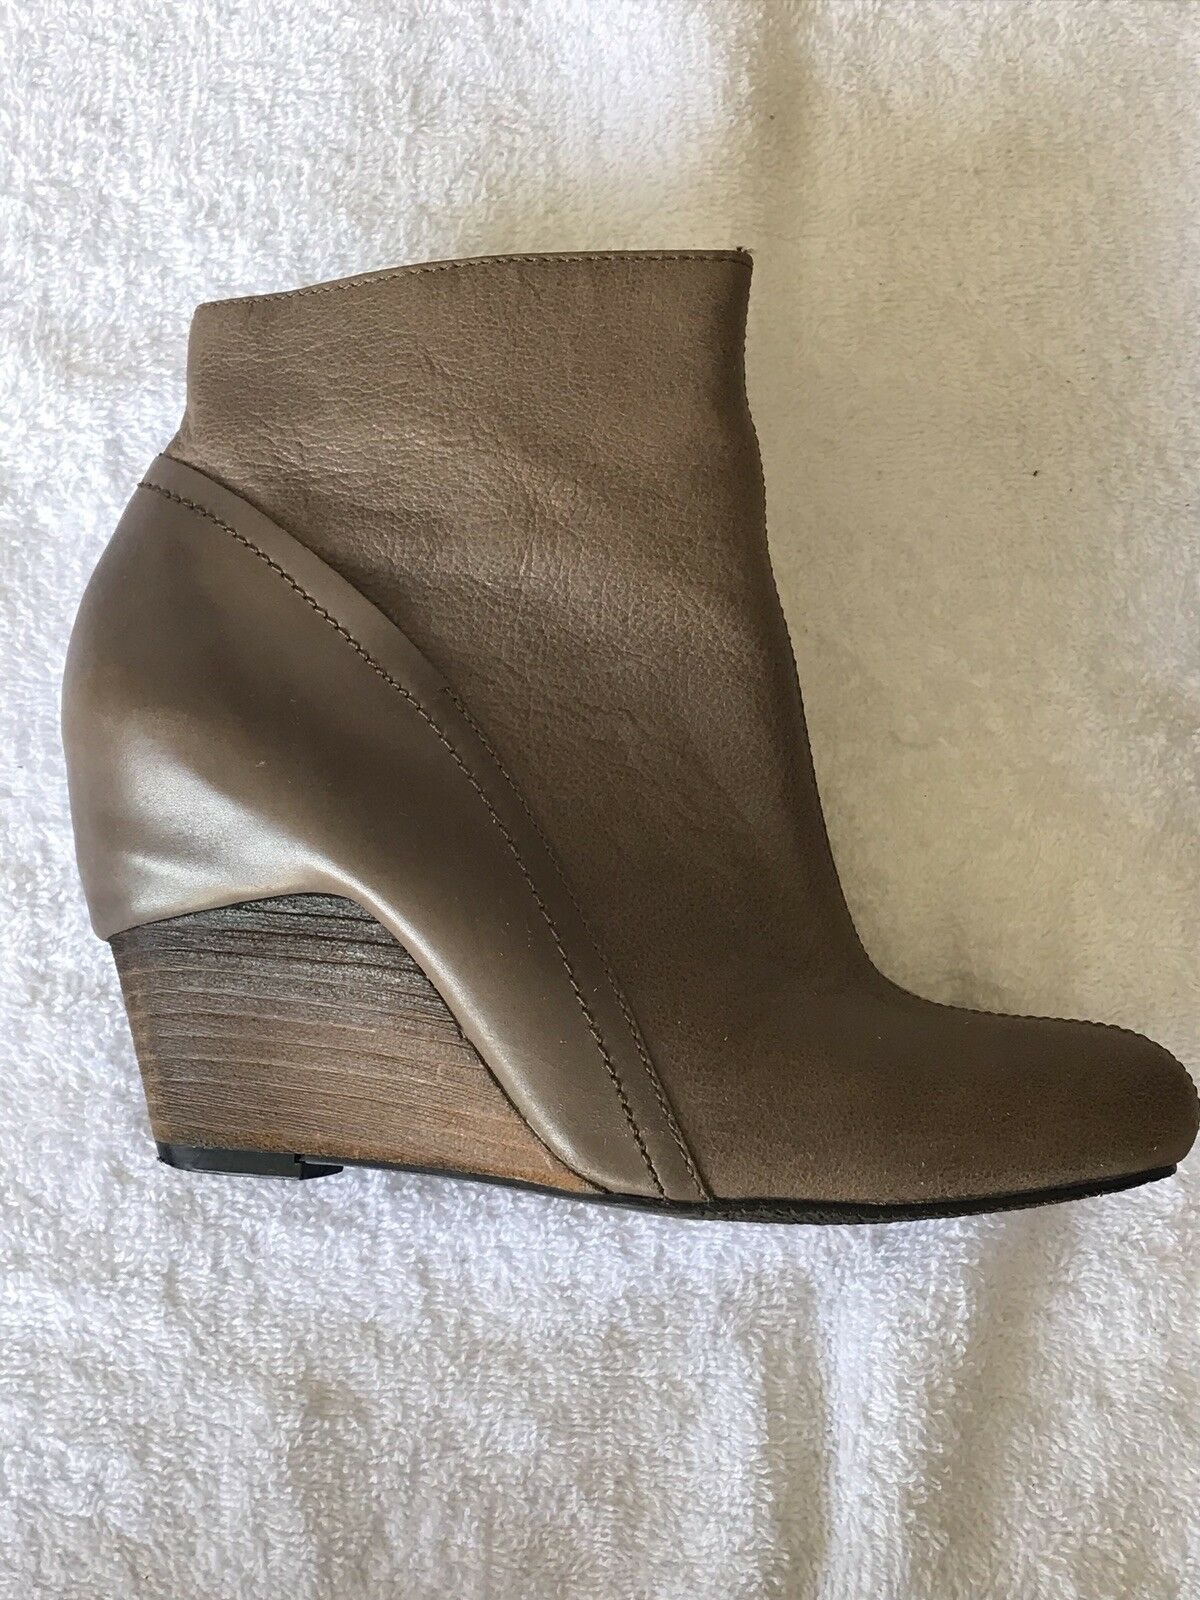 Vince Camuto Womens booties 7.5 leather